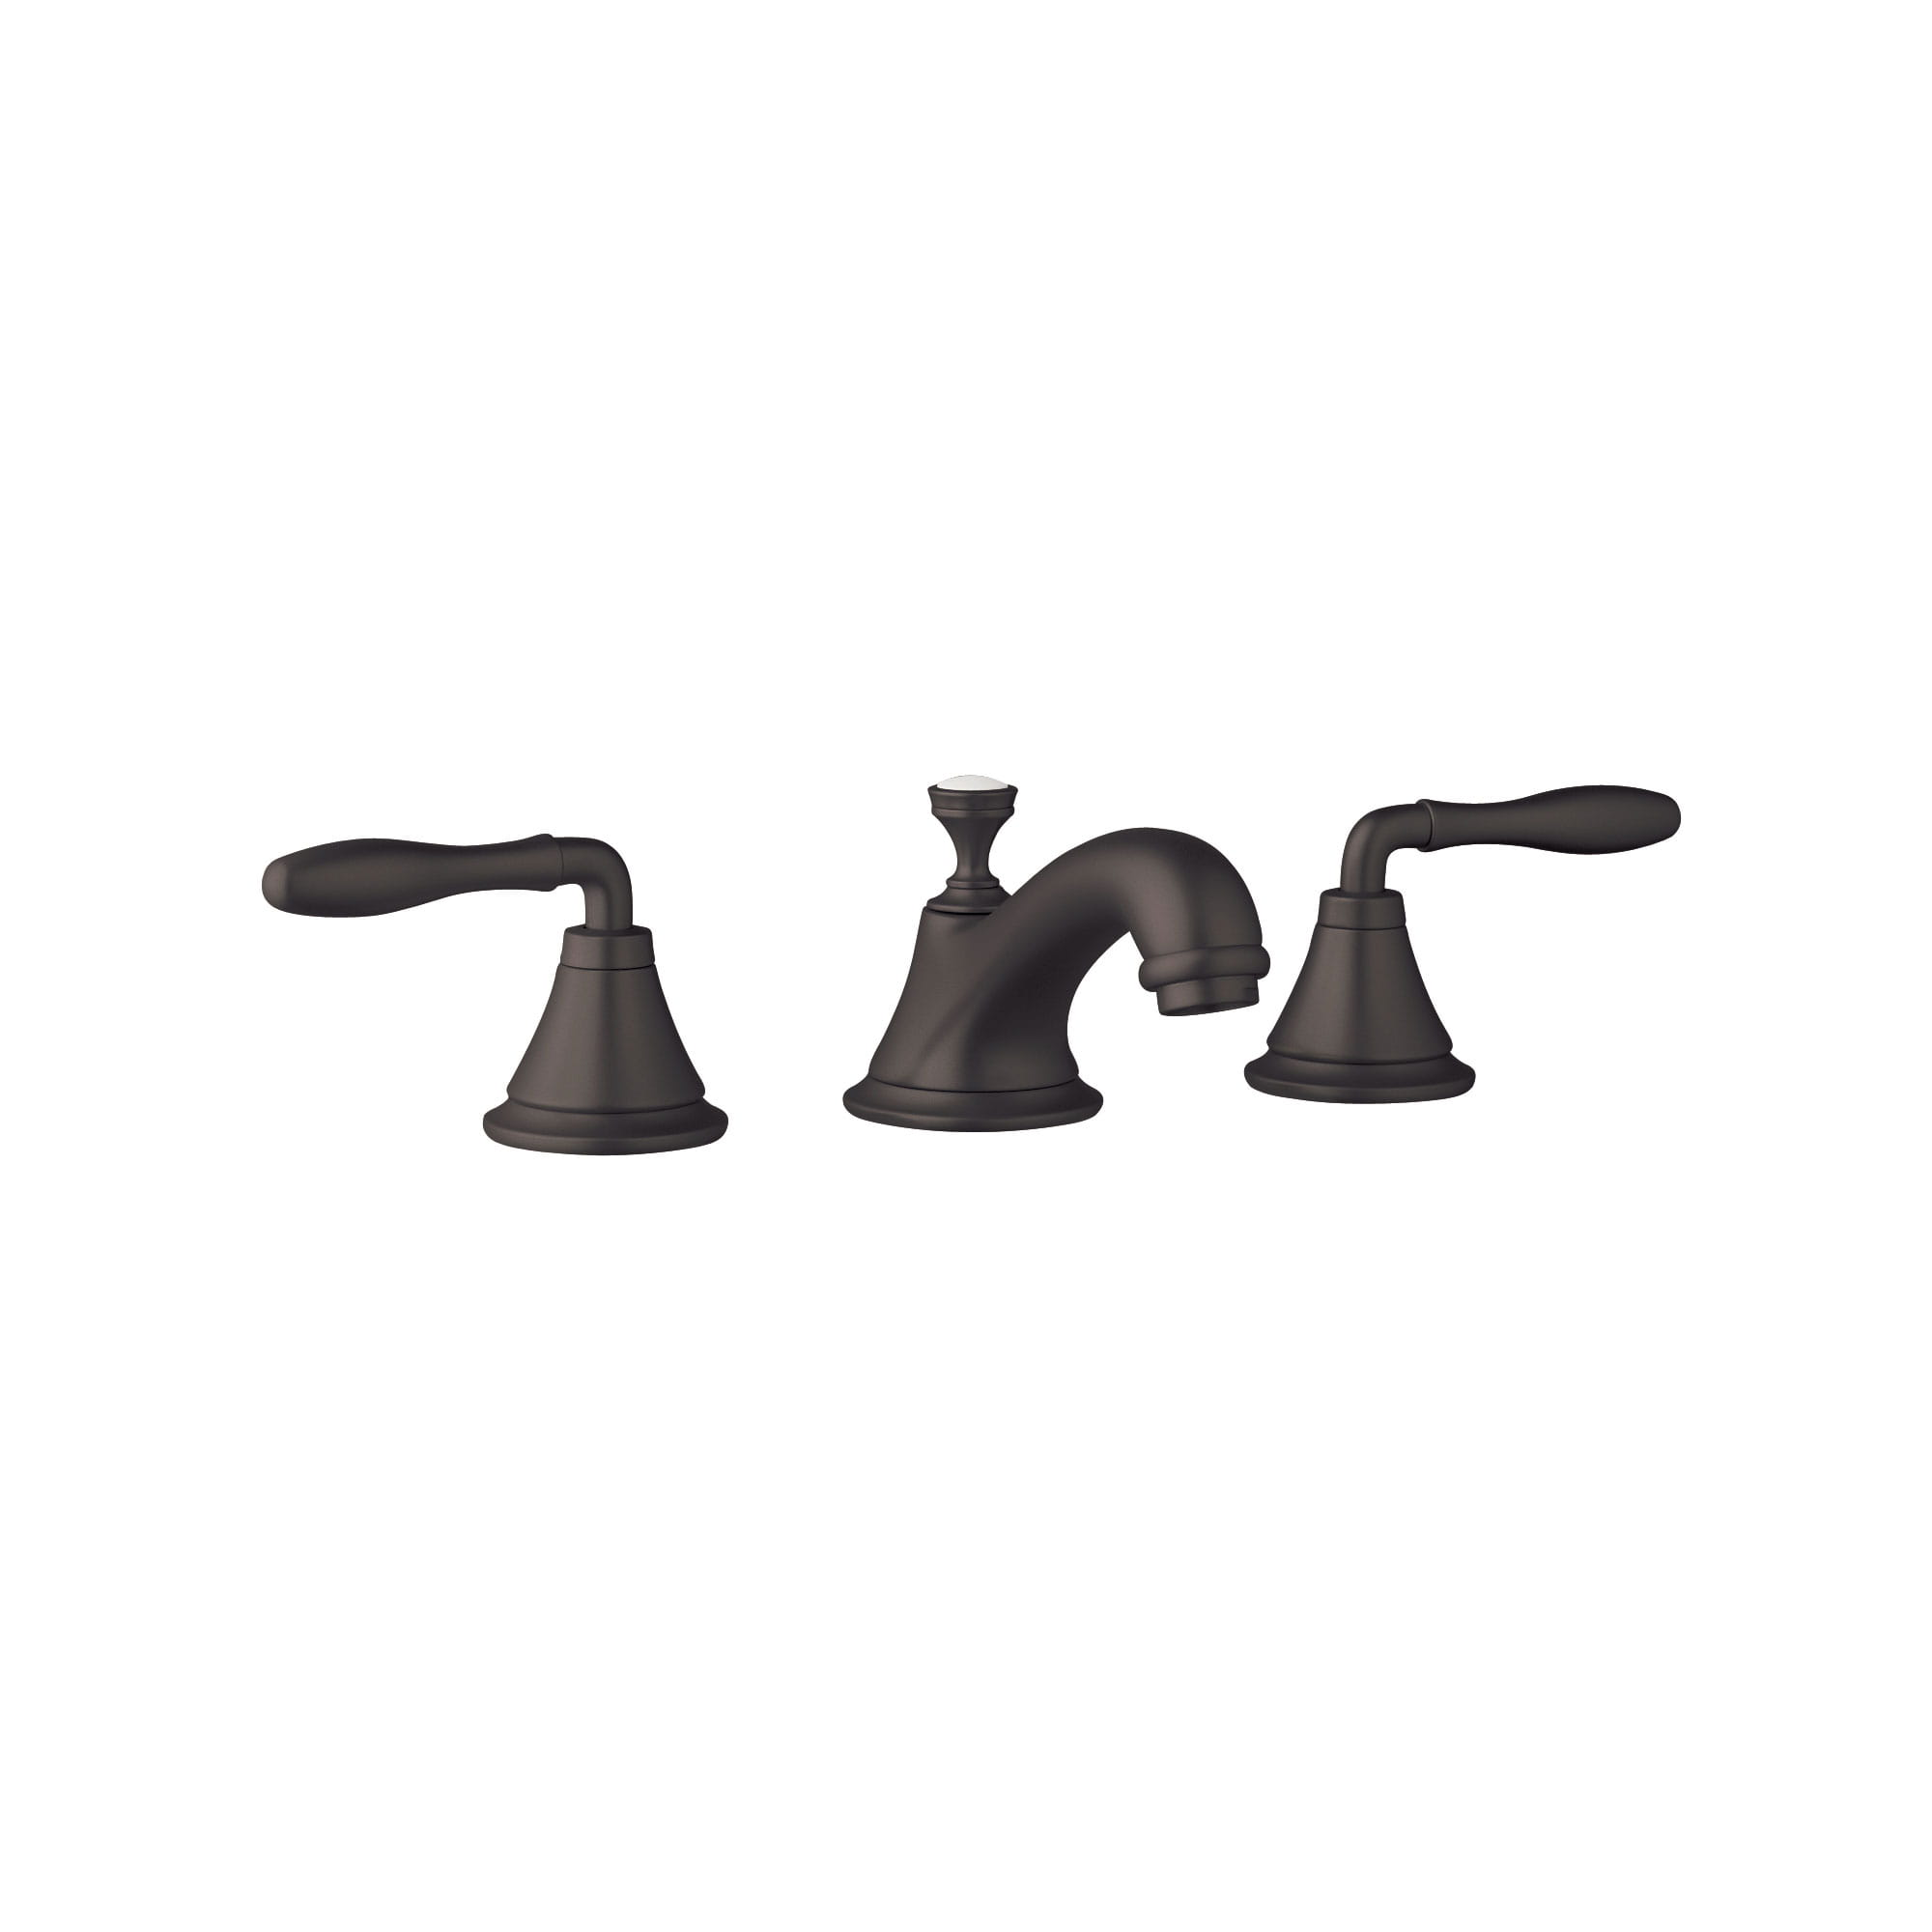 Lavatory Wideset 12 gpm GROHE OIL RUBBED BRONZE